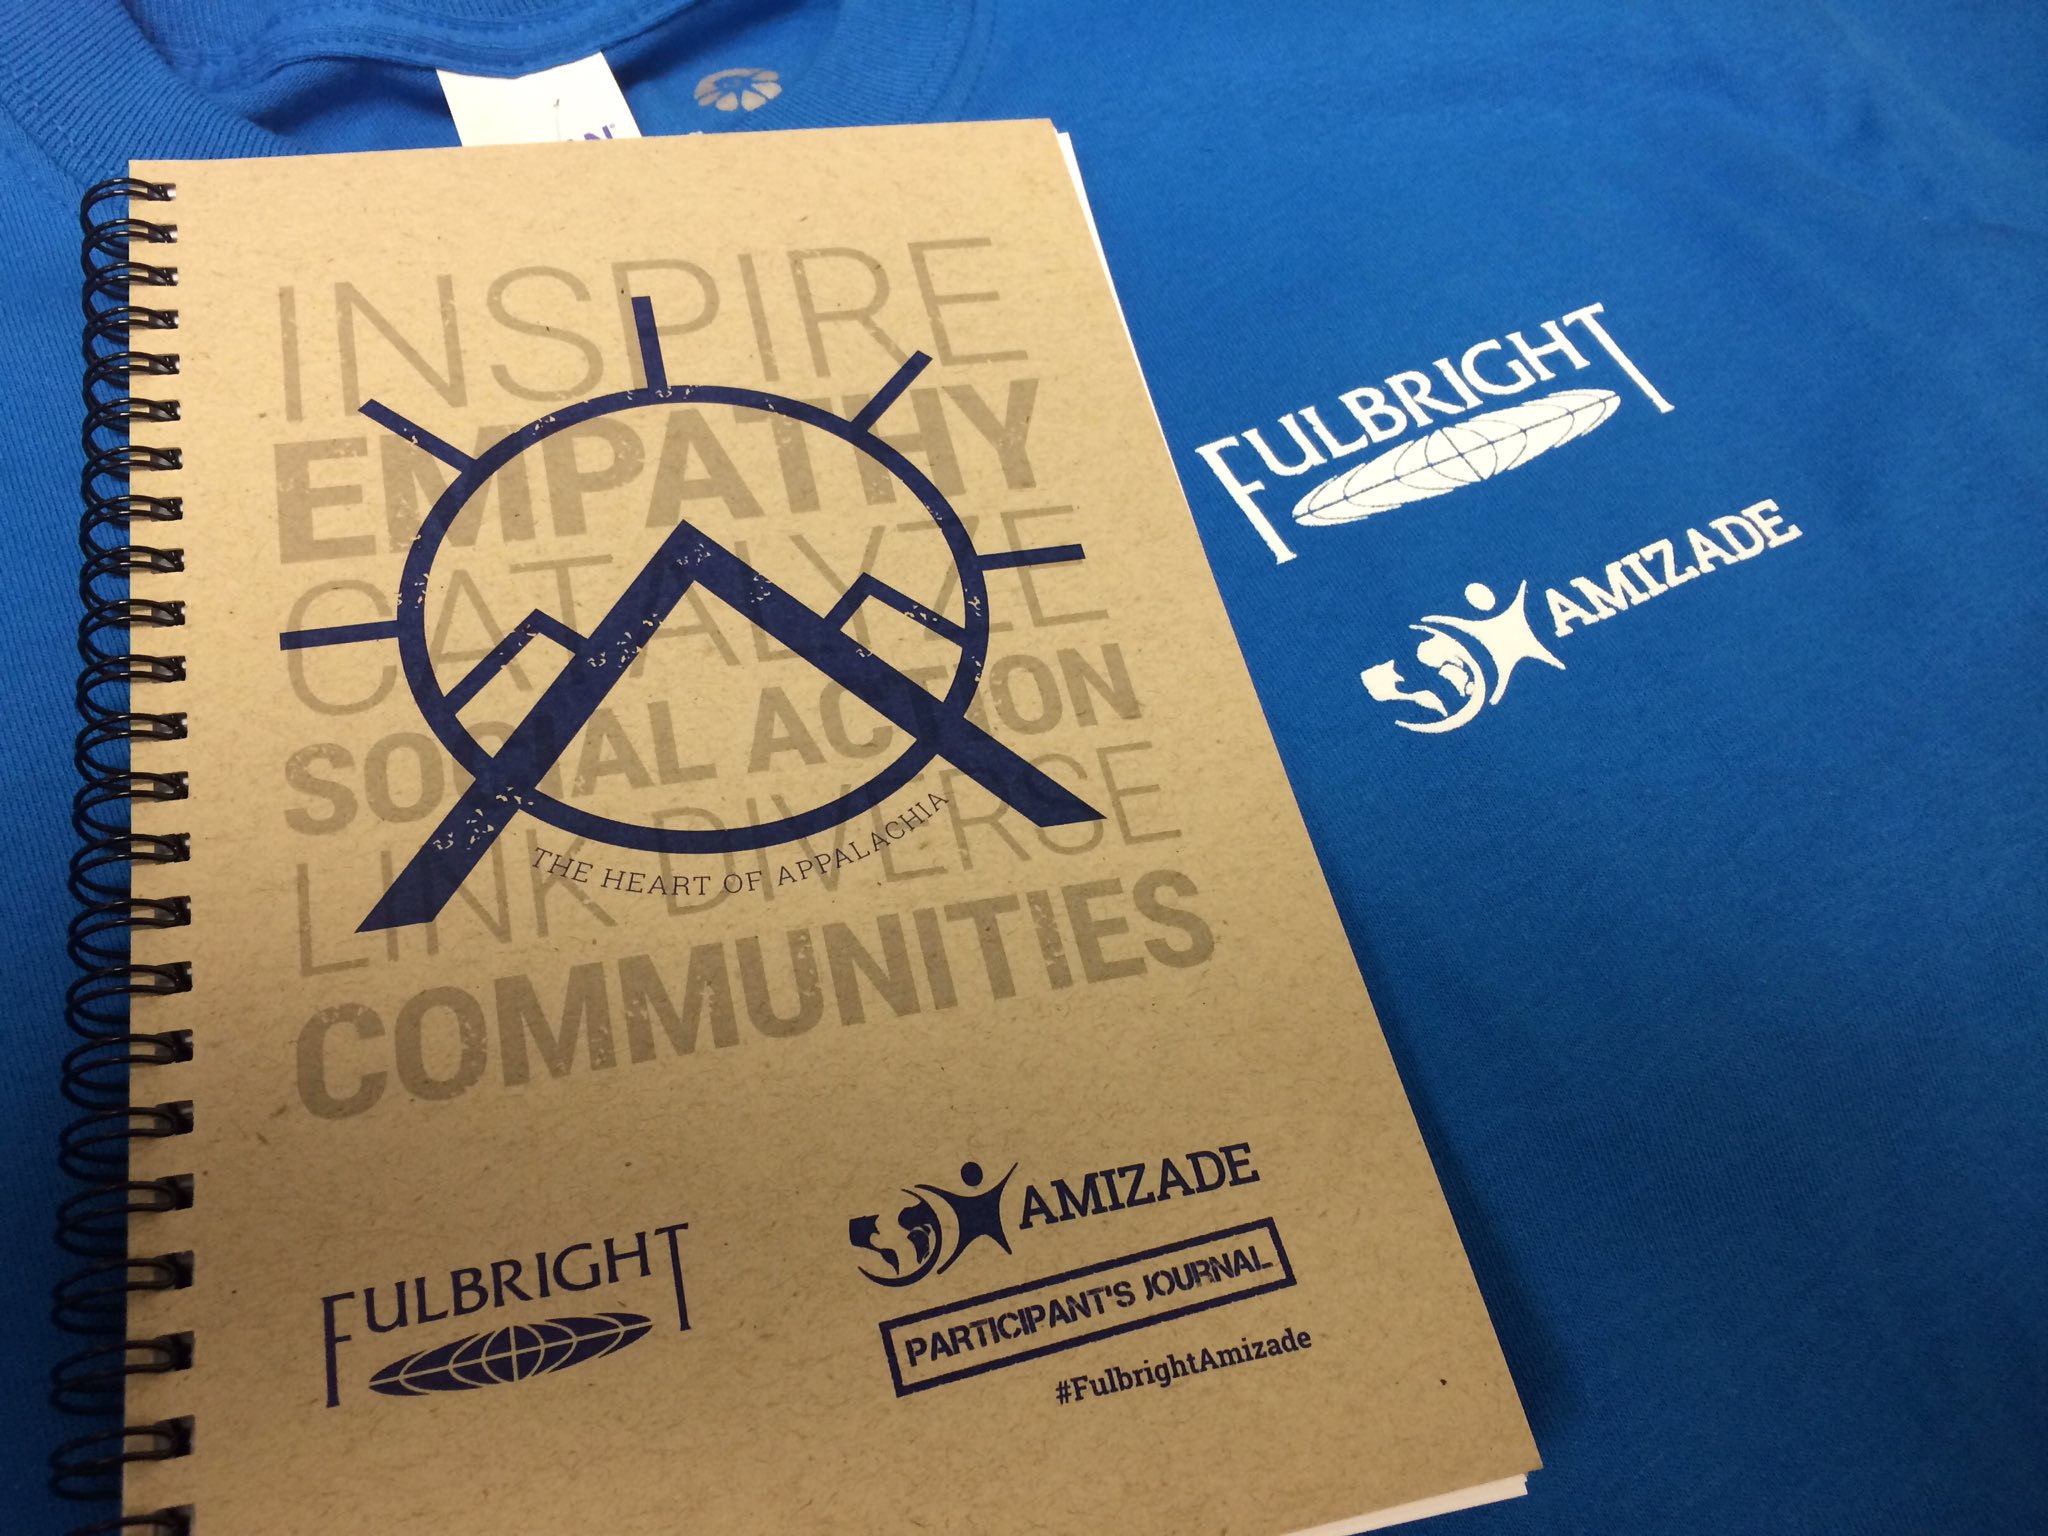 Journals and t-shirts, check. ✅ A new #journey is about to start. ⛰#FulbrightAmizade #Appalachia https://t.co/BD4Em4ZNUT